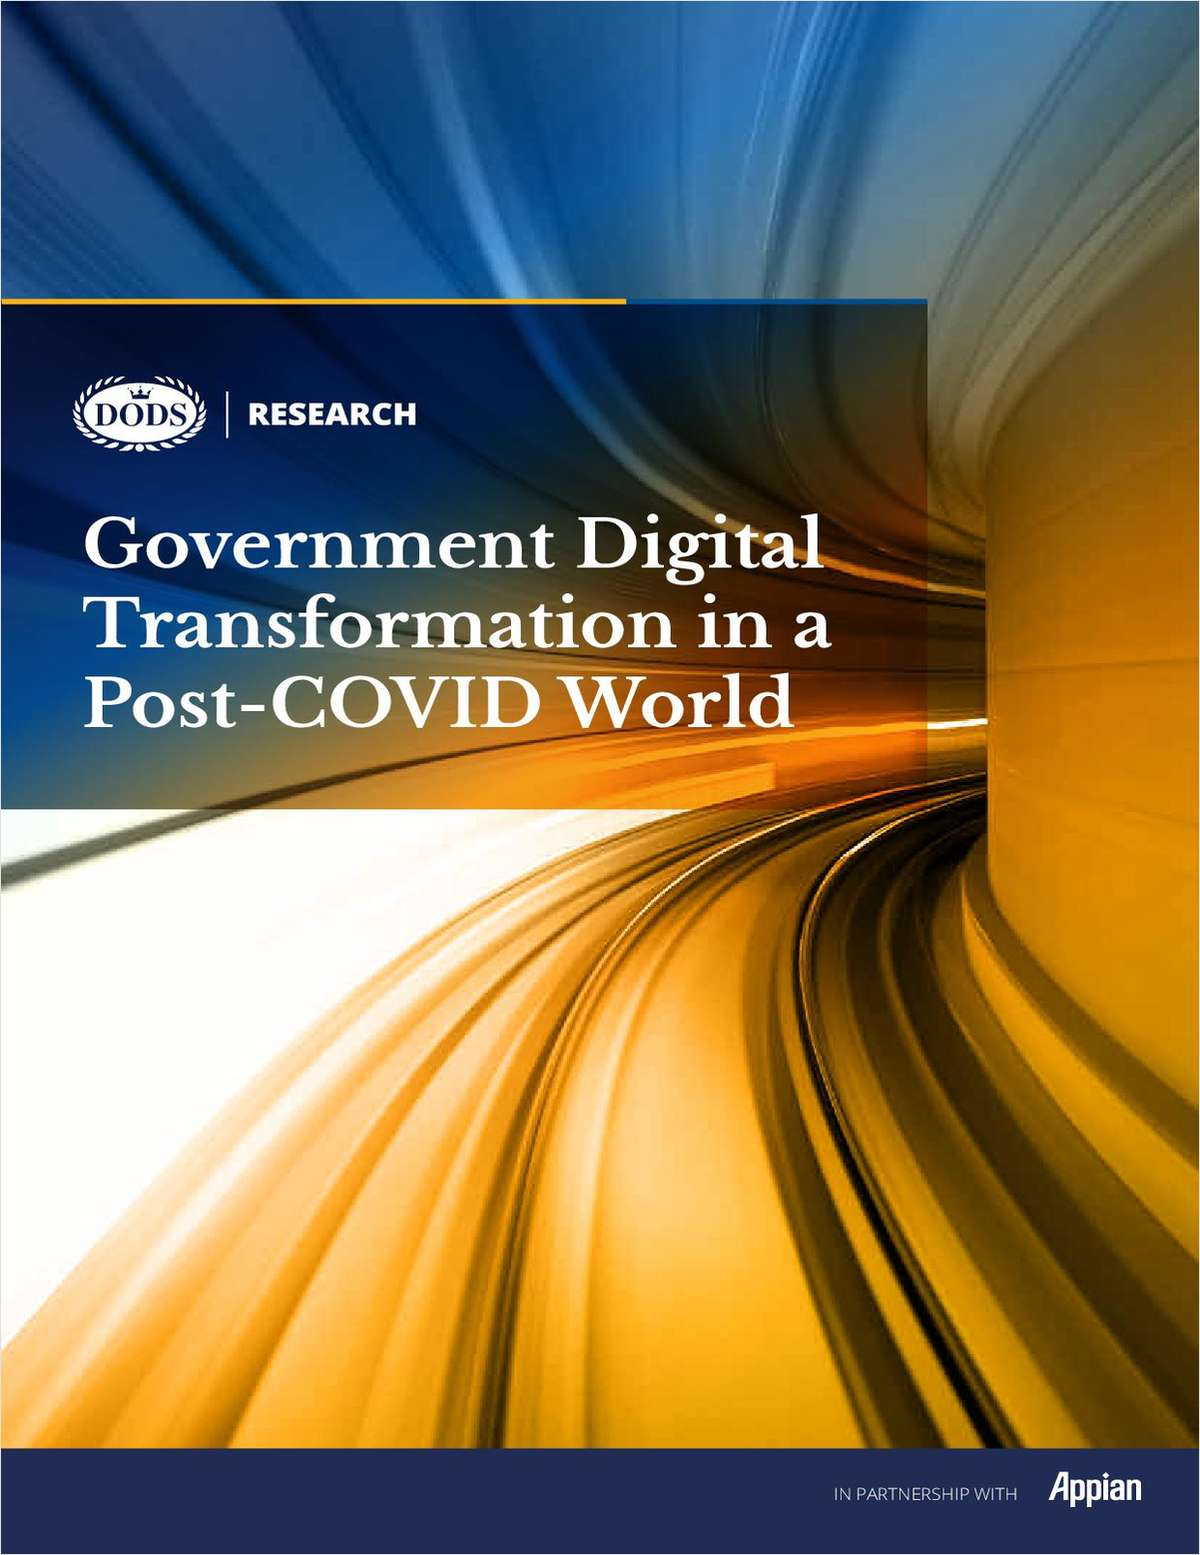 Dods Research: Government Digital Transformation in a Post-COVID World